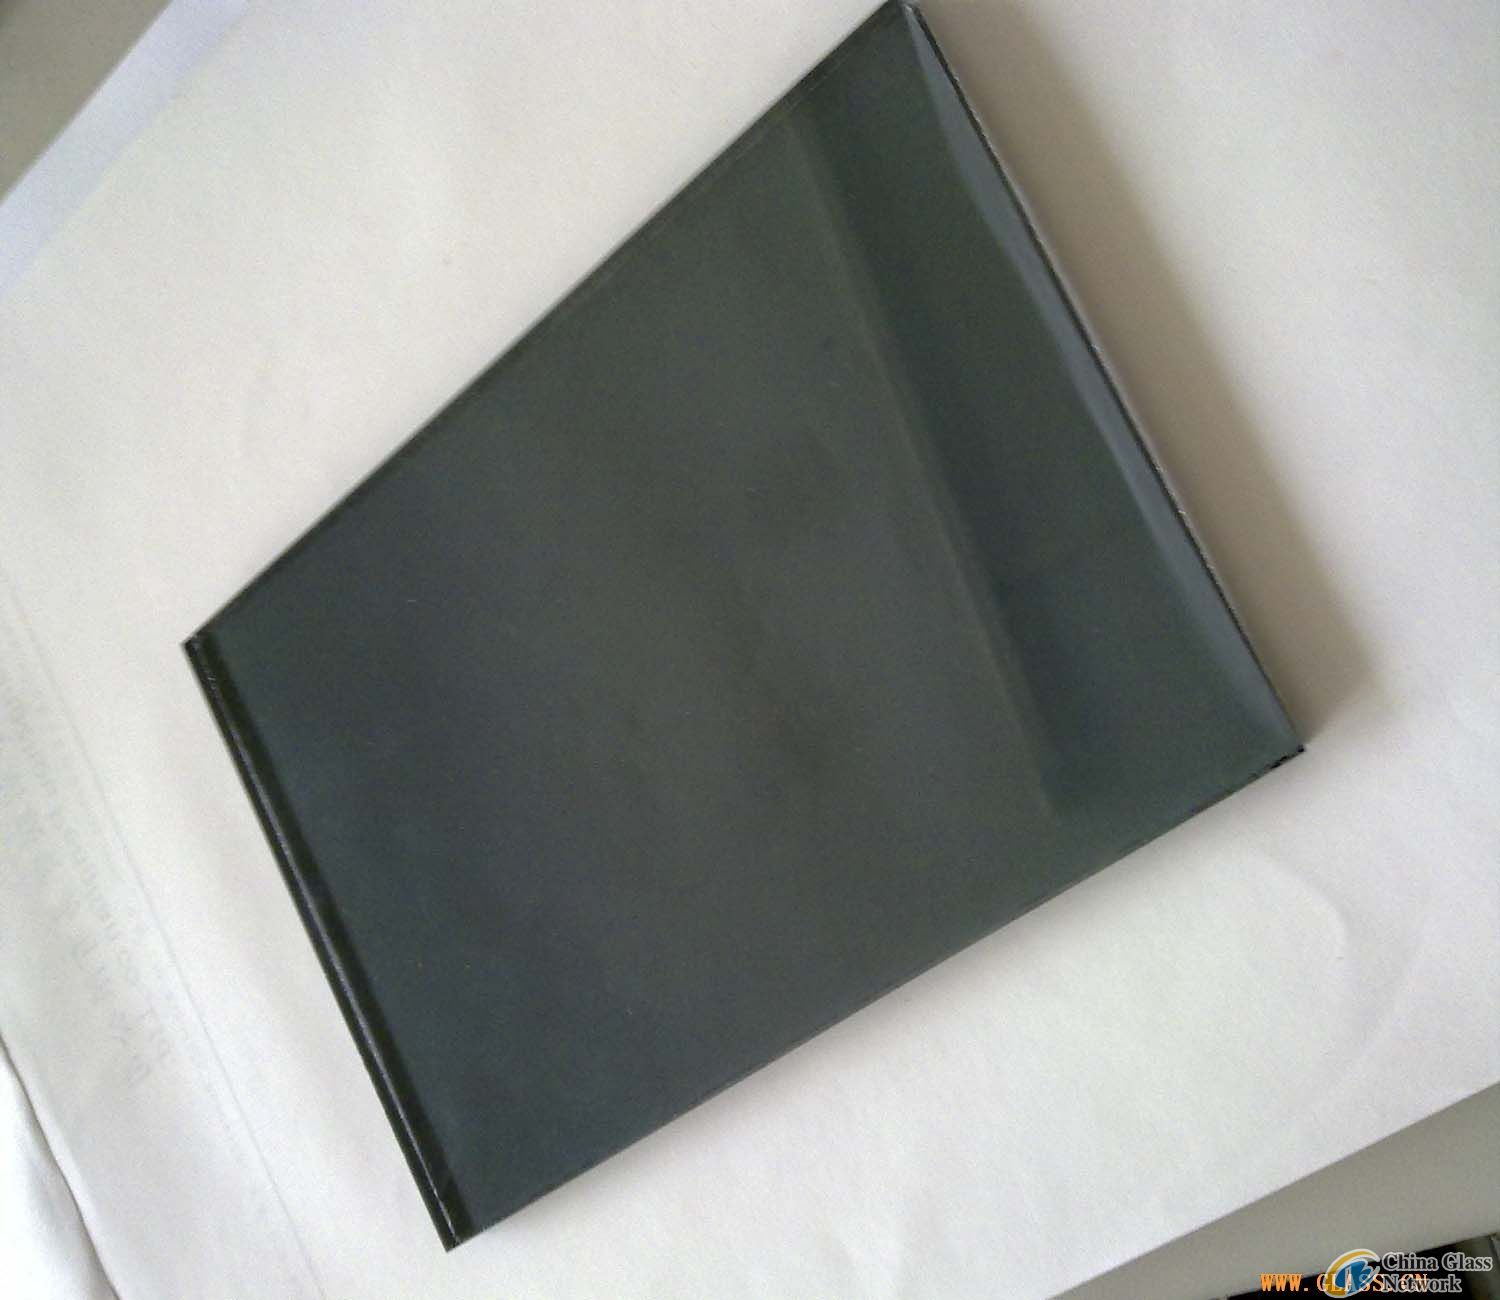 5mm black float glass